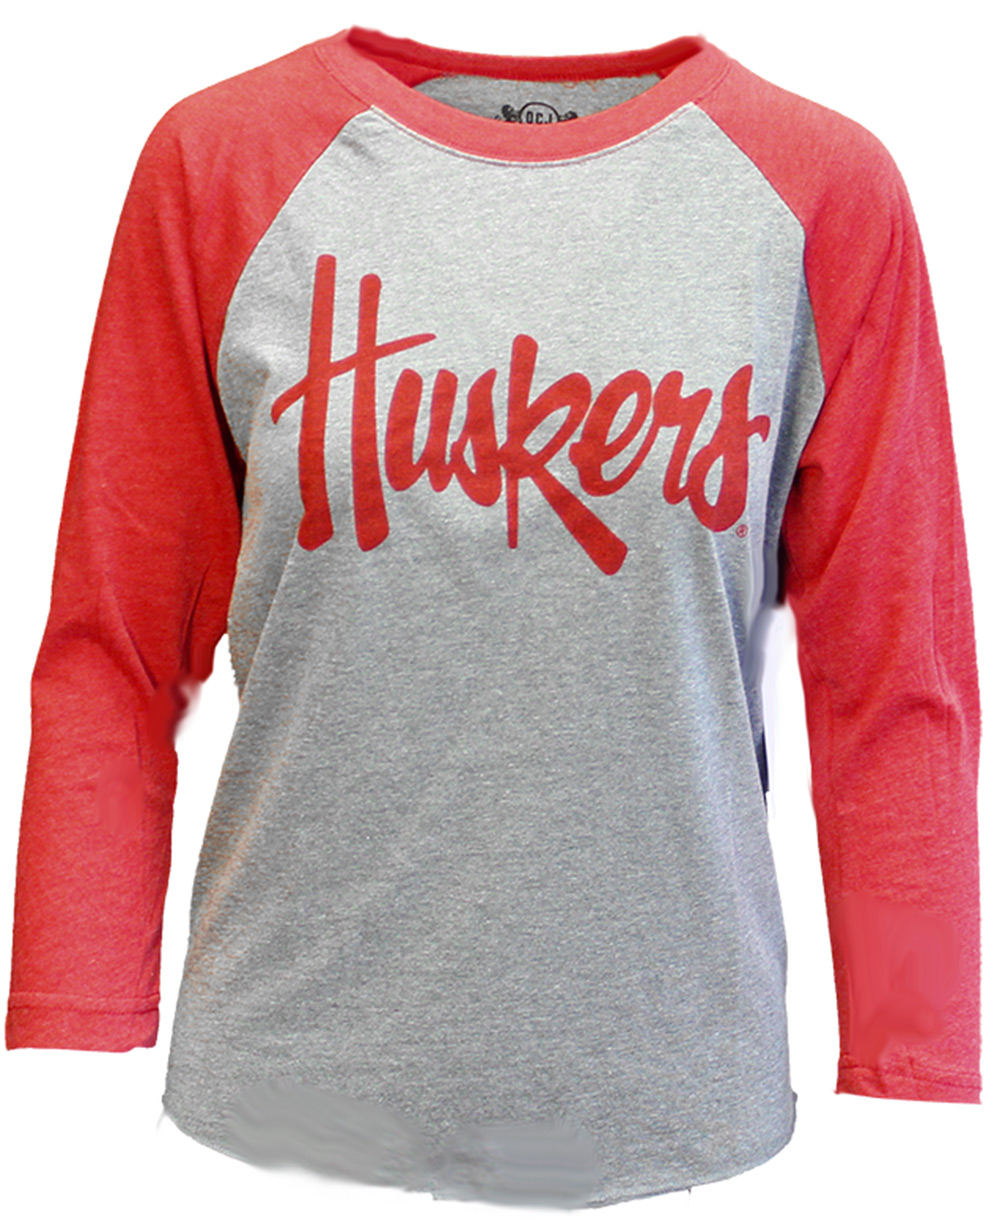 Womens Huskers Raglan Tee OCJ - Gray Nebraska Cornhuskers, Nebraska  Ladies T-Shirts, Huskers  Ladies T-Shirts, Nebraska  Long Sleeve, Huskers  Long Sleeve, Nebraska  Ladies, Huskers  Ladies, Nebraska Womens Huskers Raglan Tee OCJ - Gray  , Huskers Womens Huskers Raglan Tee OCJ - Gray